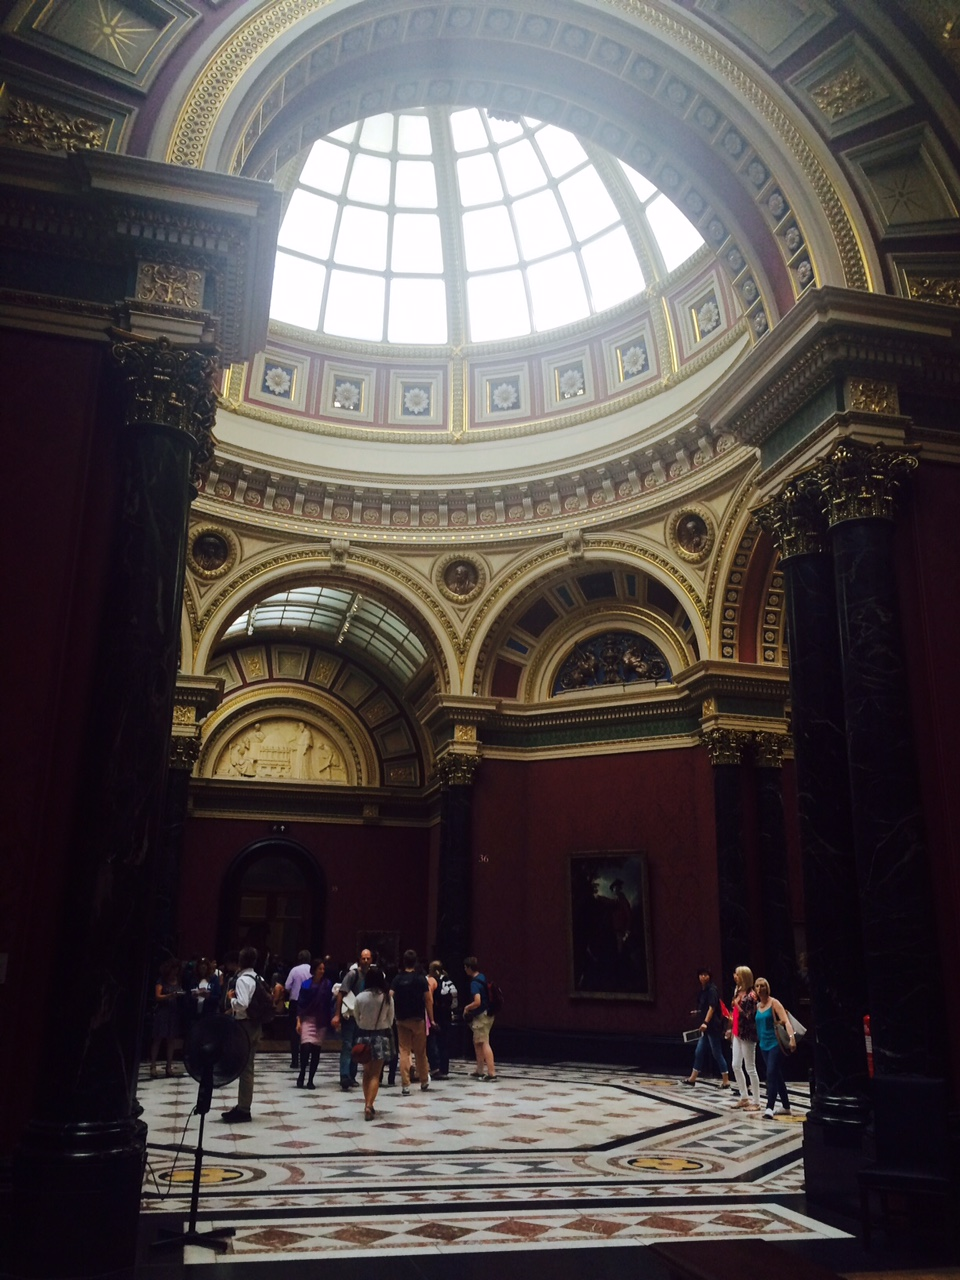 The National Gallery is gorgeous.  The architecture as thrilling as the art.